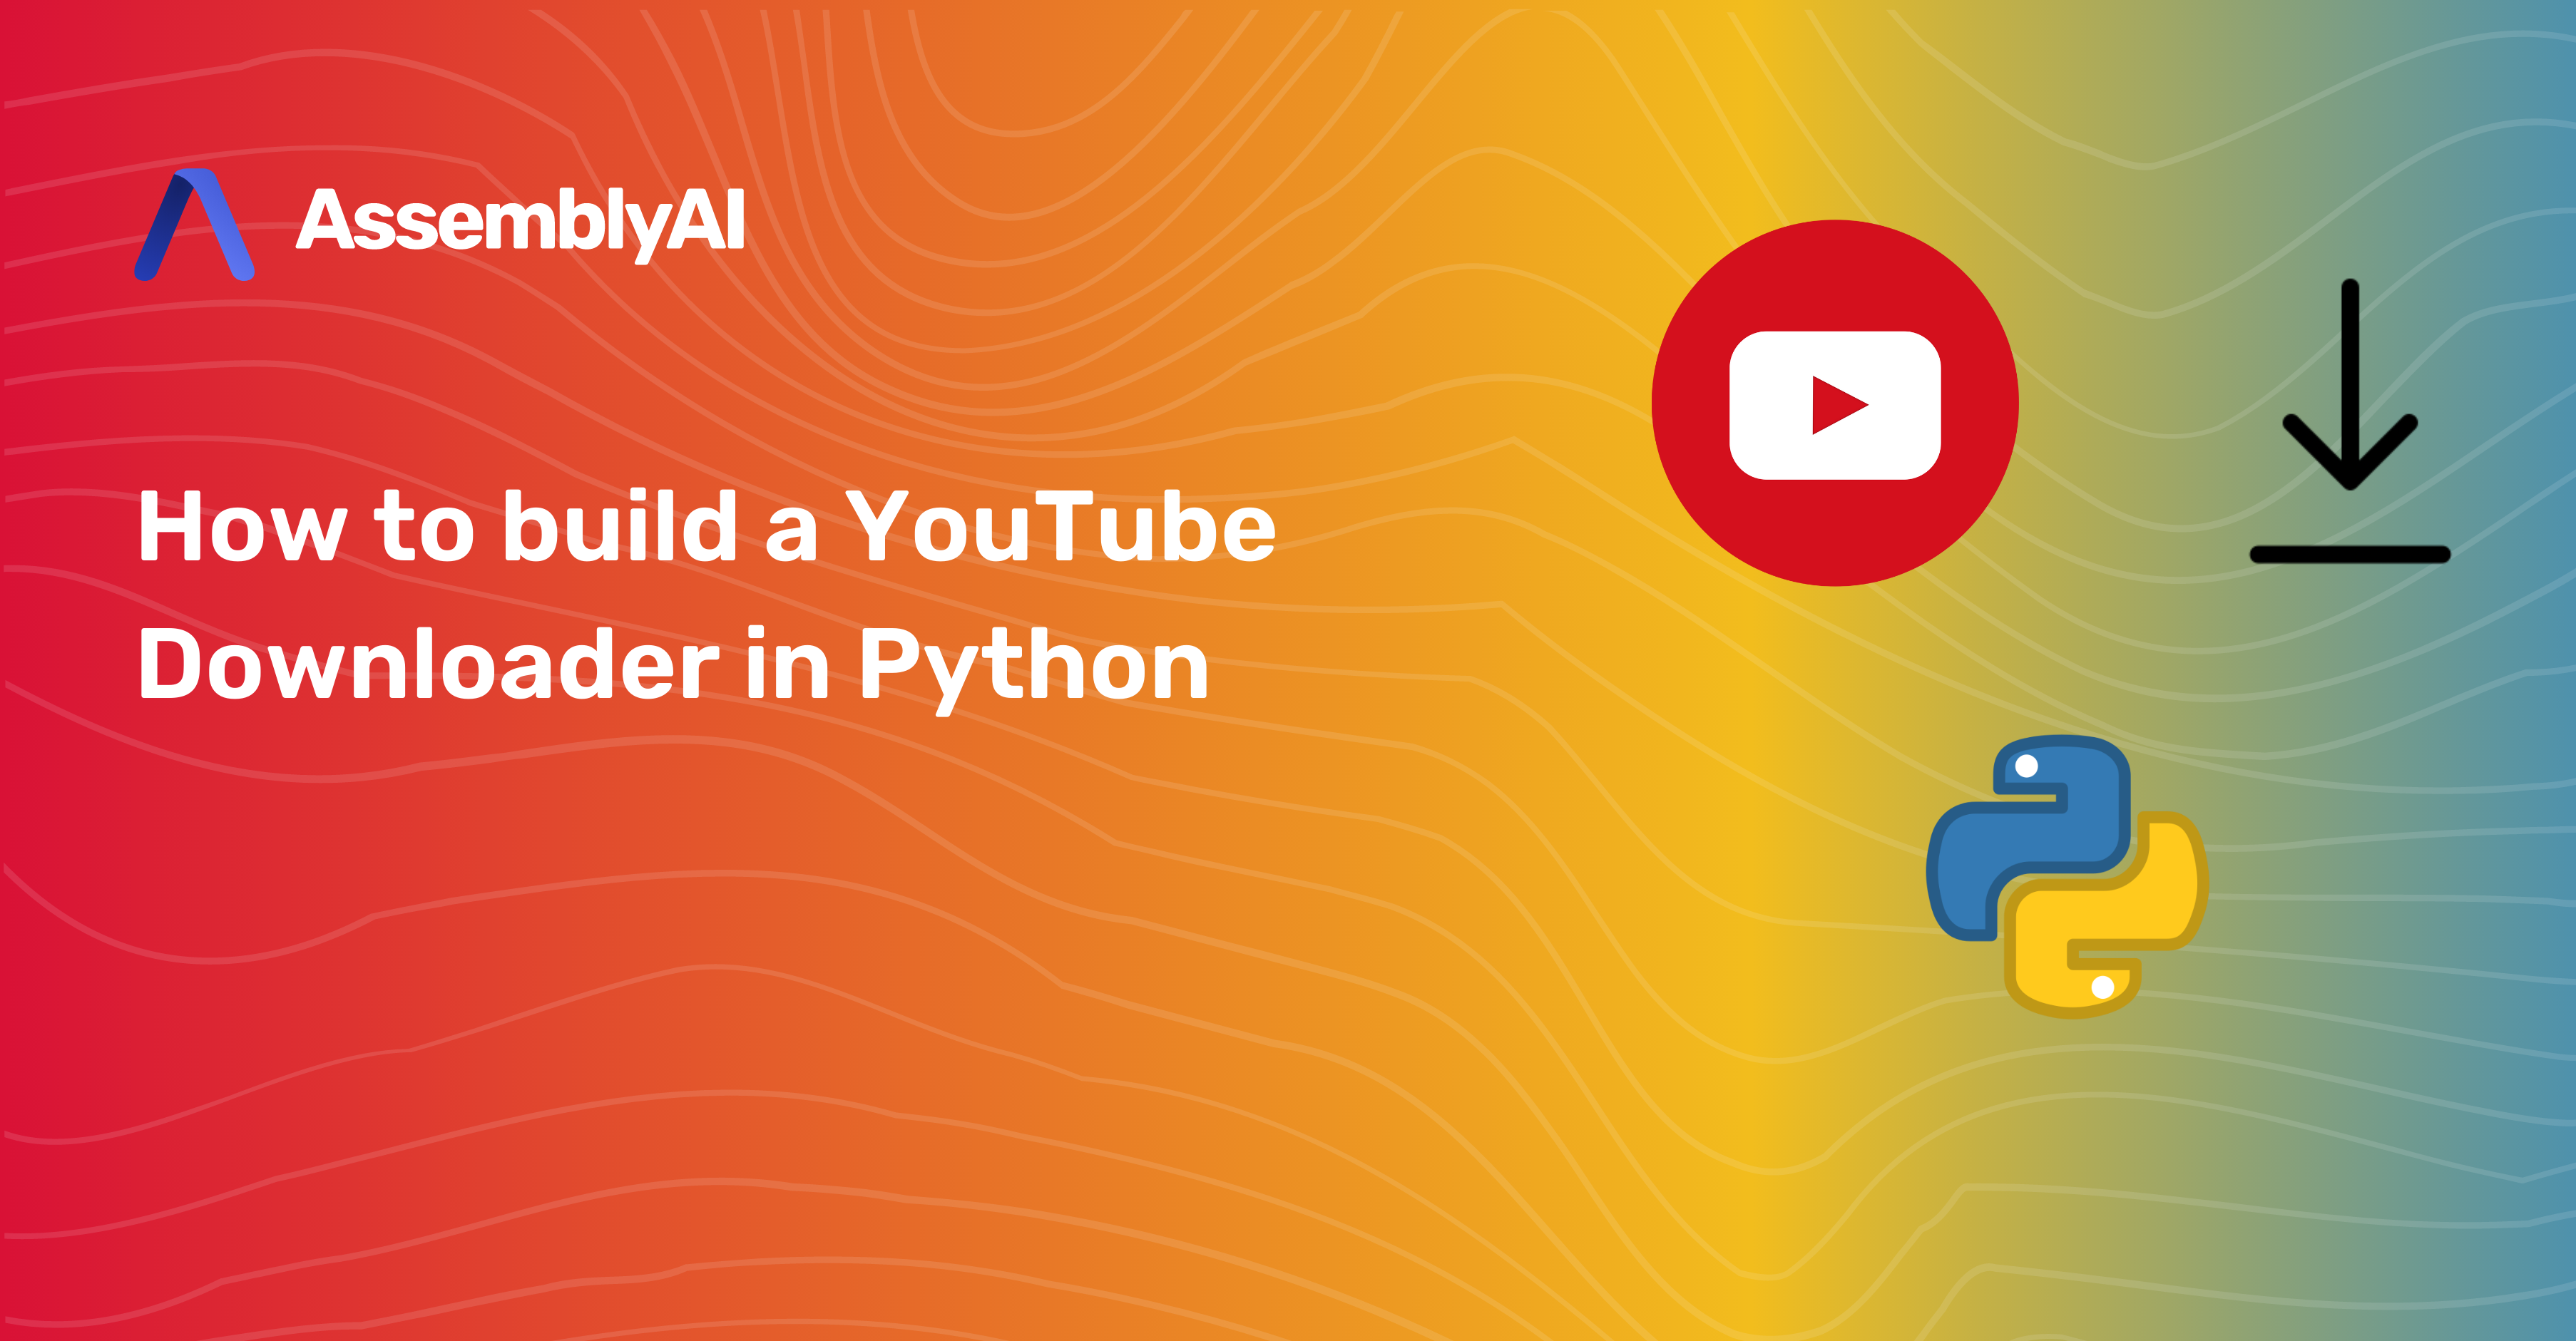 How to build a YouTube Downloader in Python